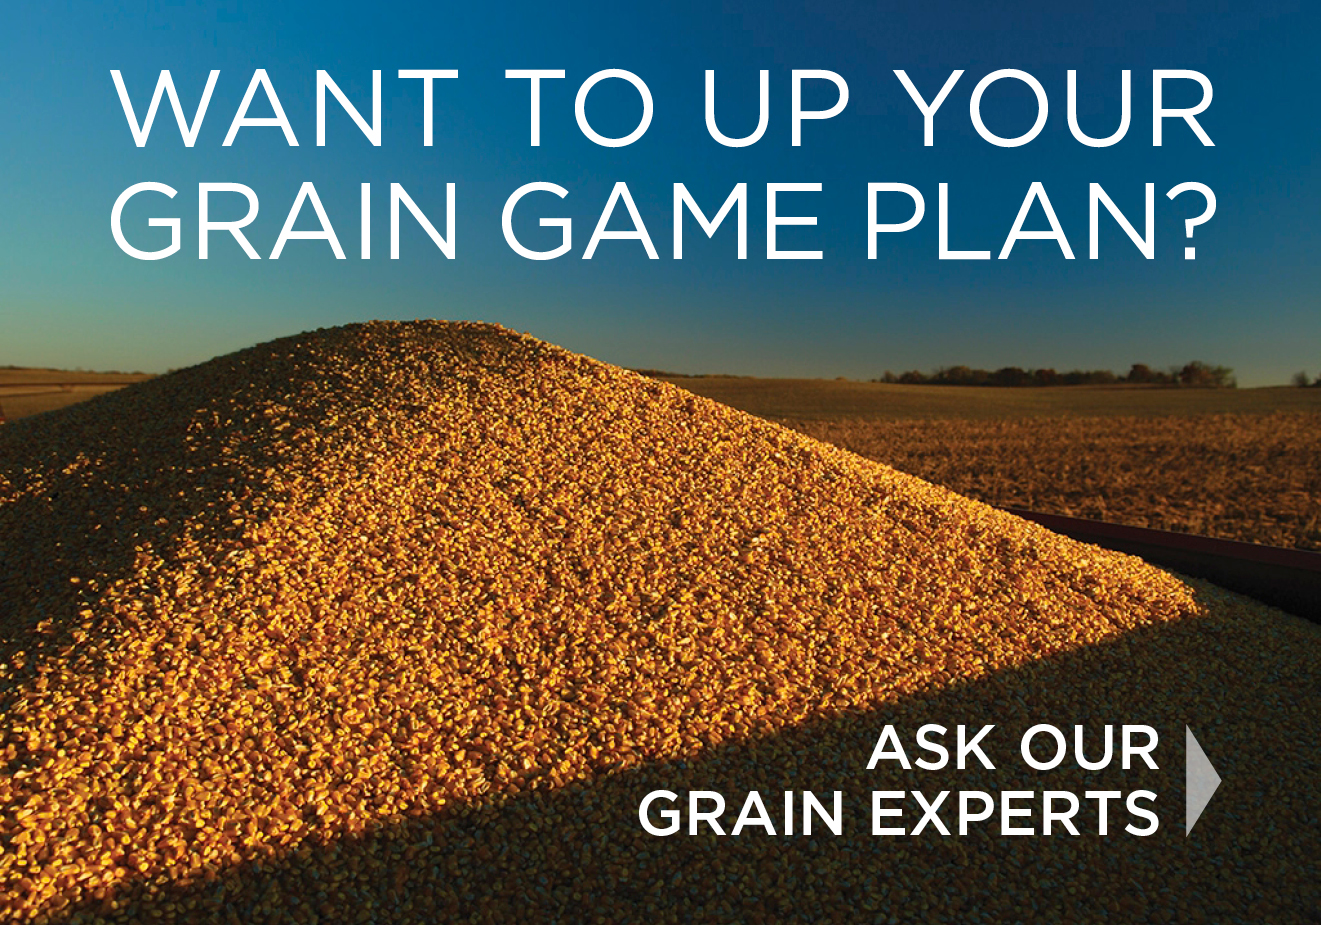 Call us To Up Your Grain Game Plan